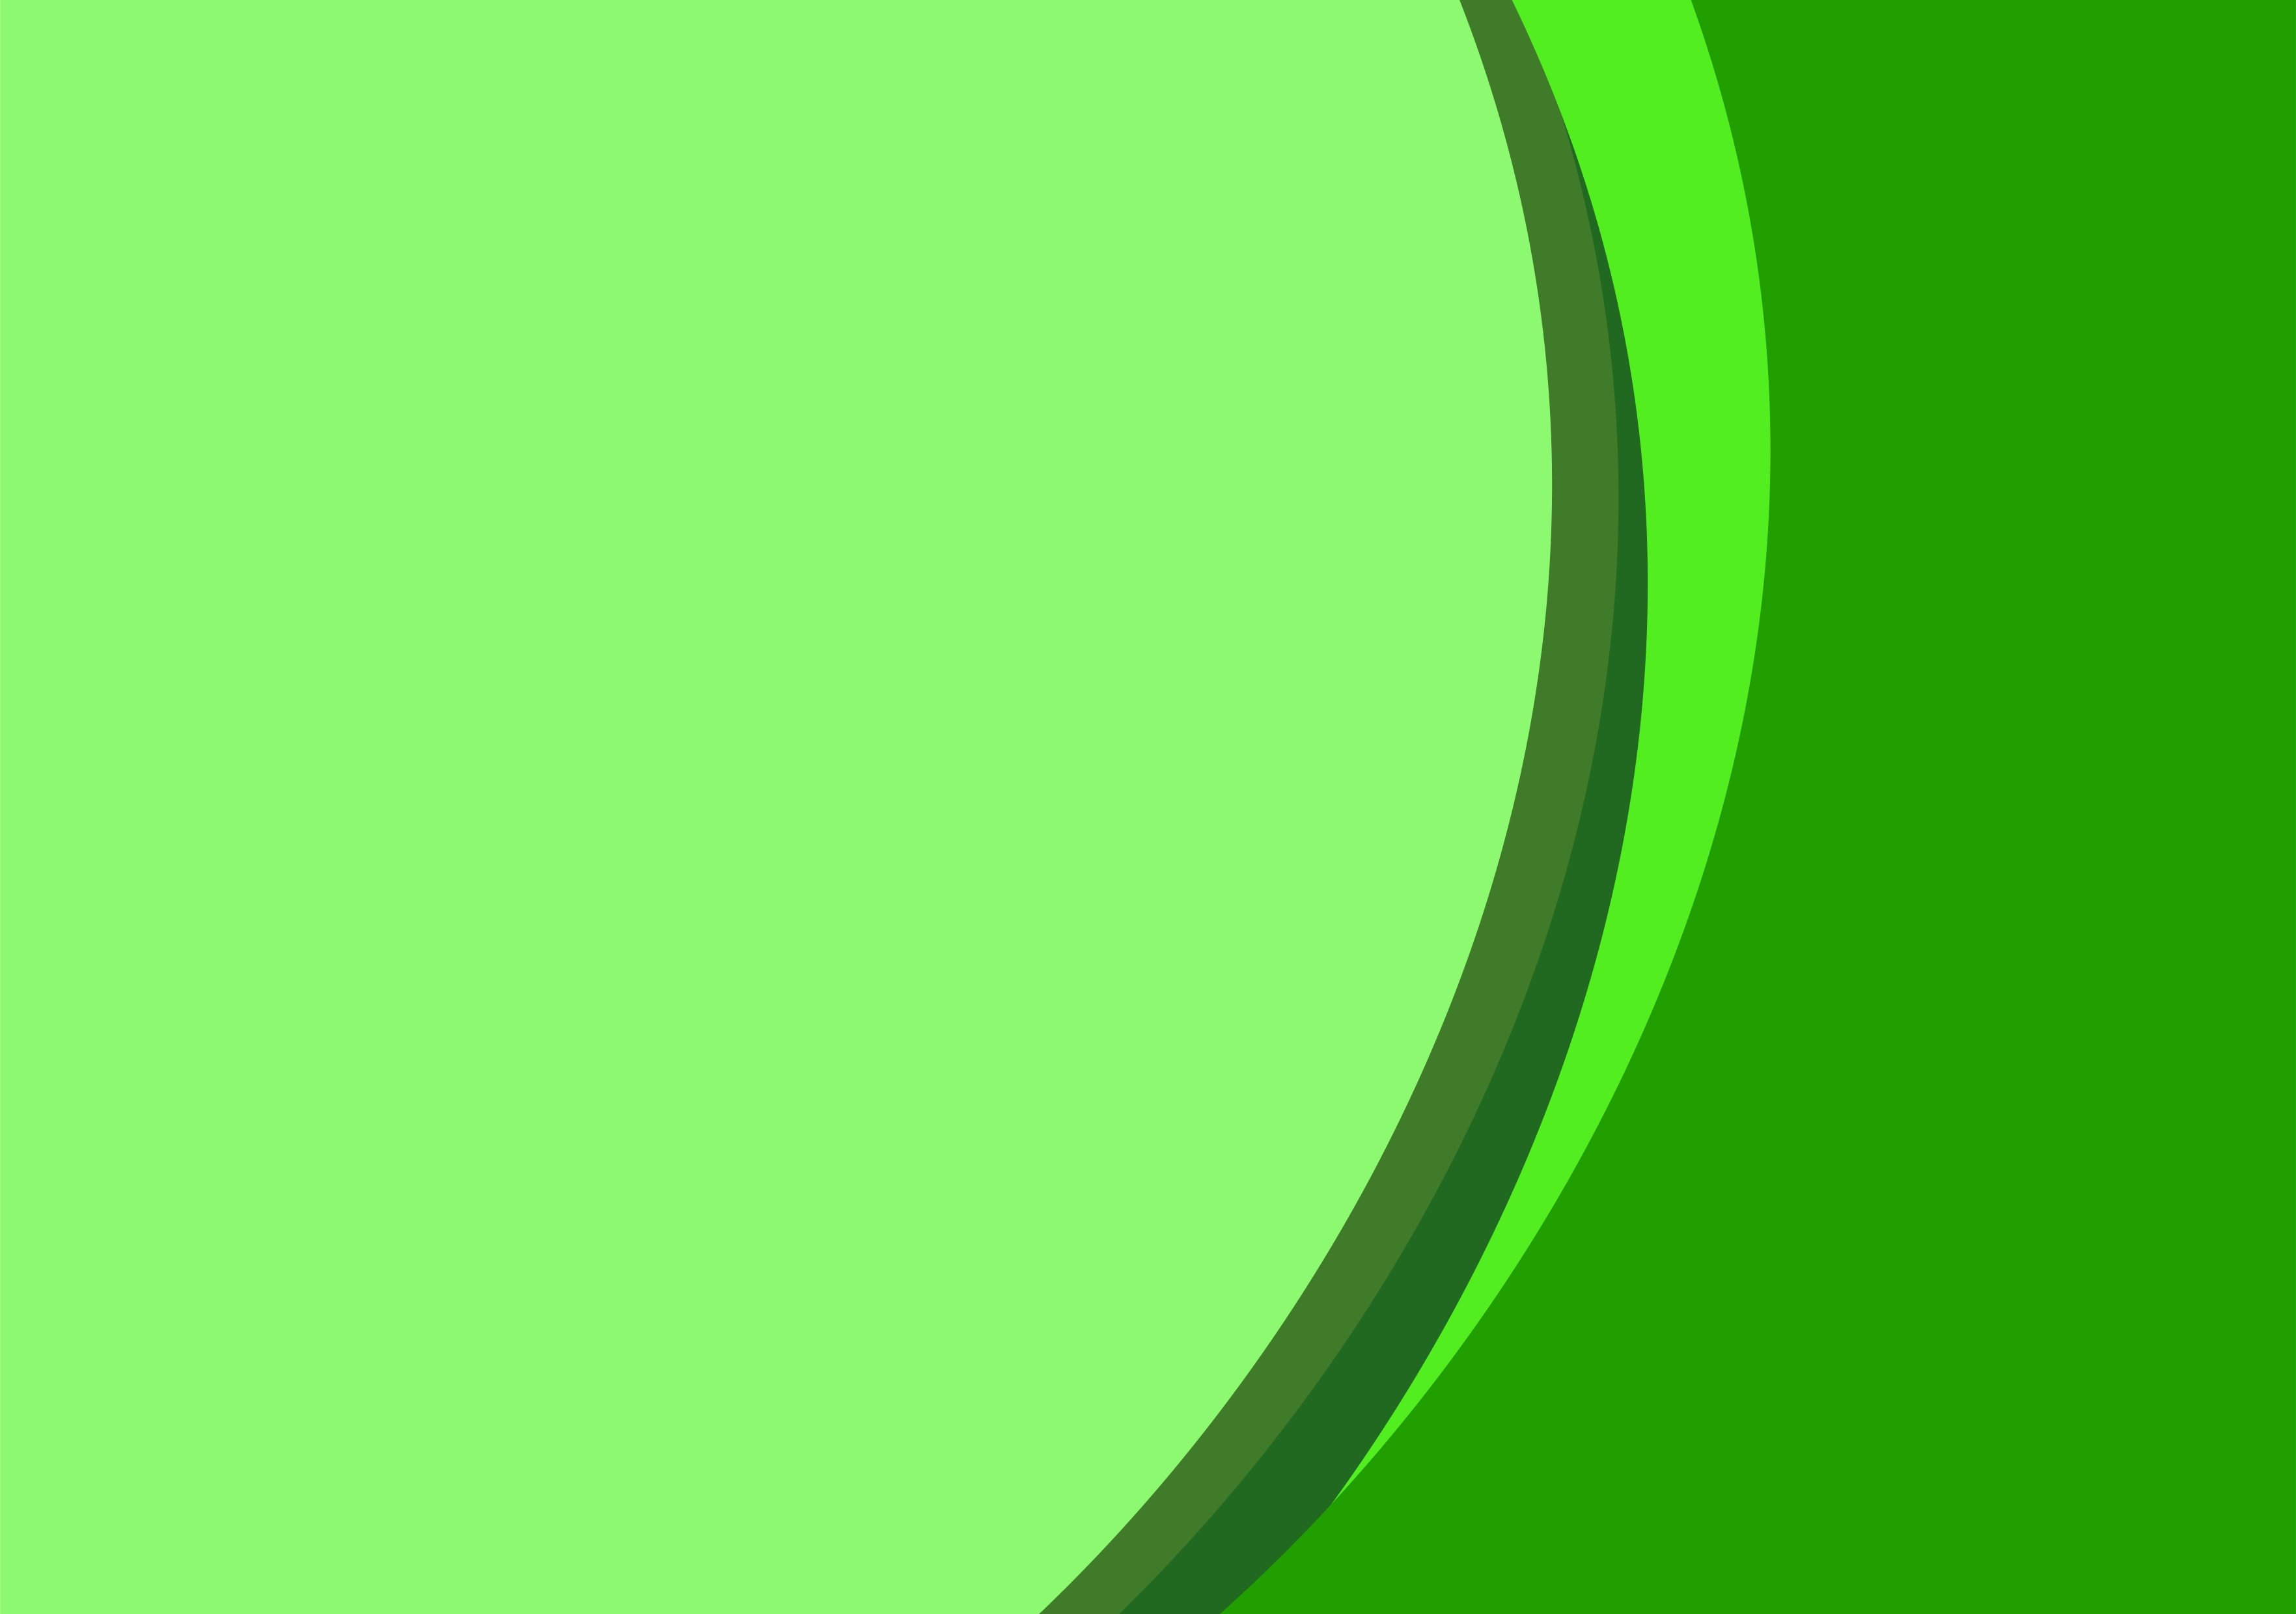 green background clipart - photo #1